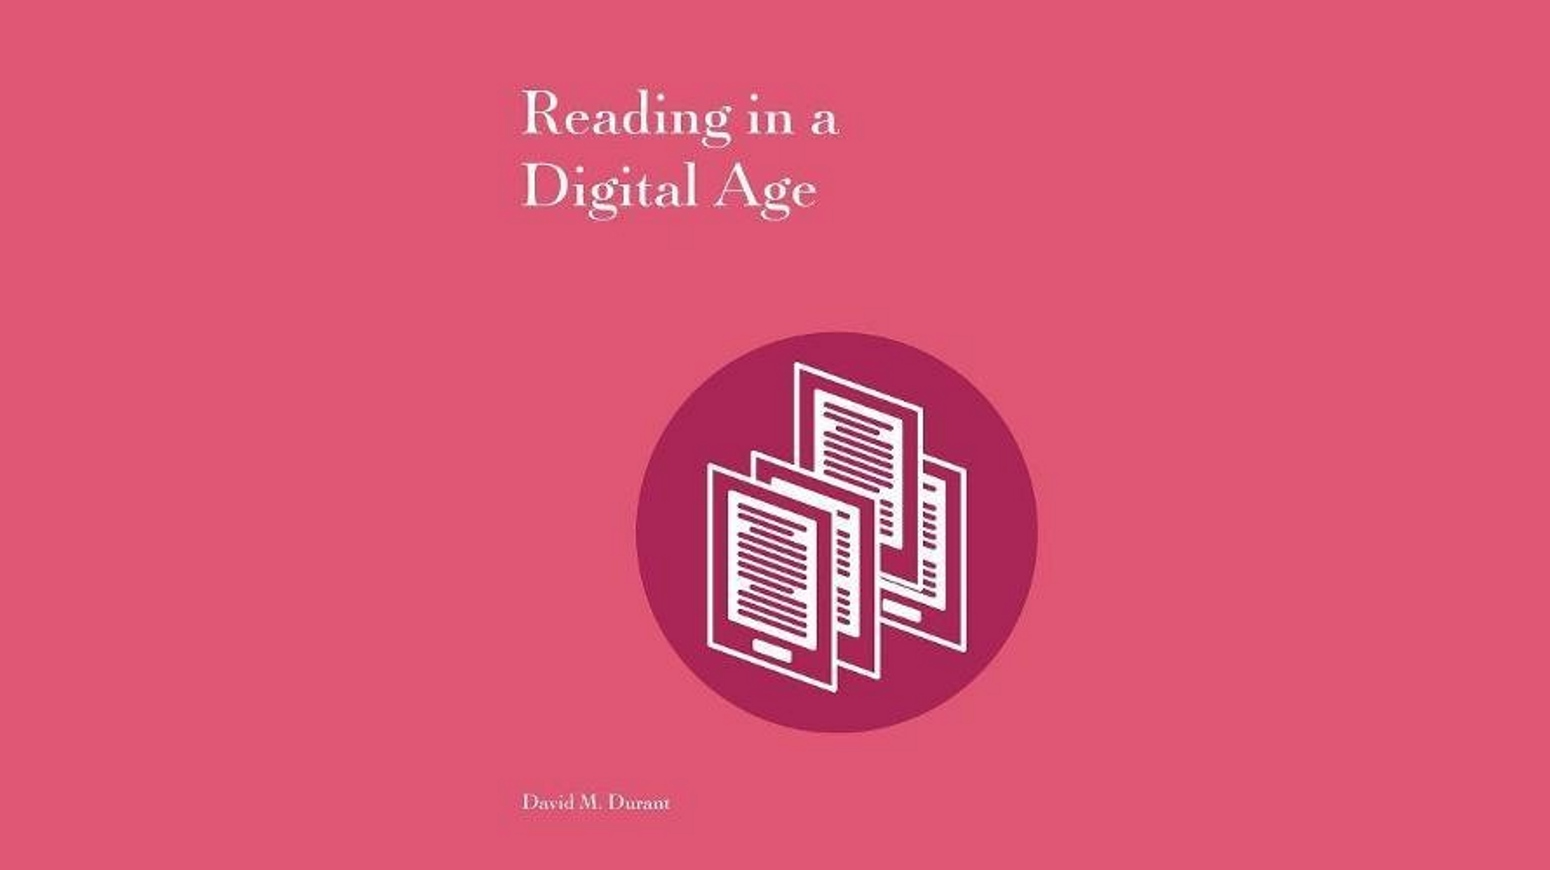 Reading in a Digital Age